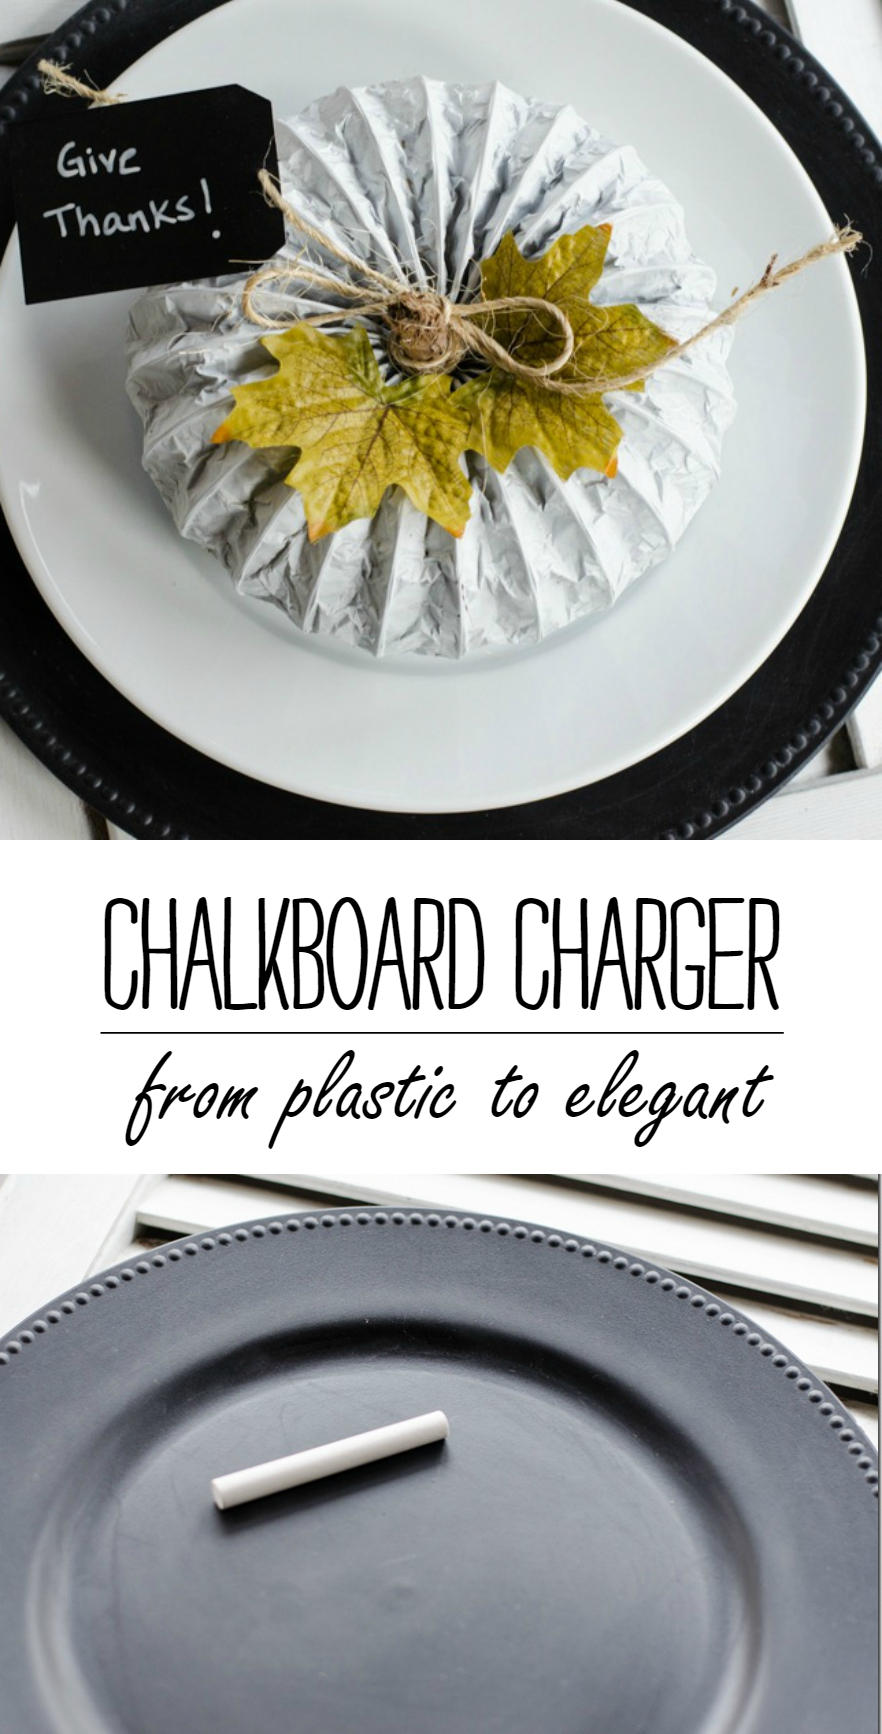 Holiday Table Settings Using DIY Chalkboard Chargers - Made from Plastic Dollar Store Plates